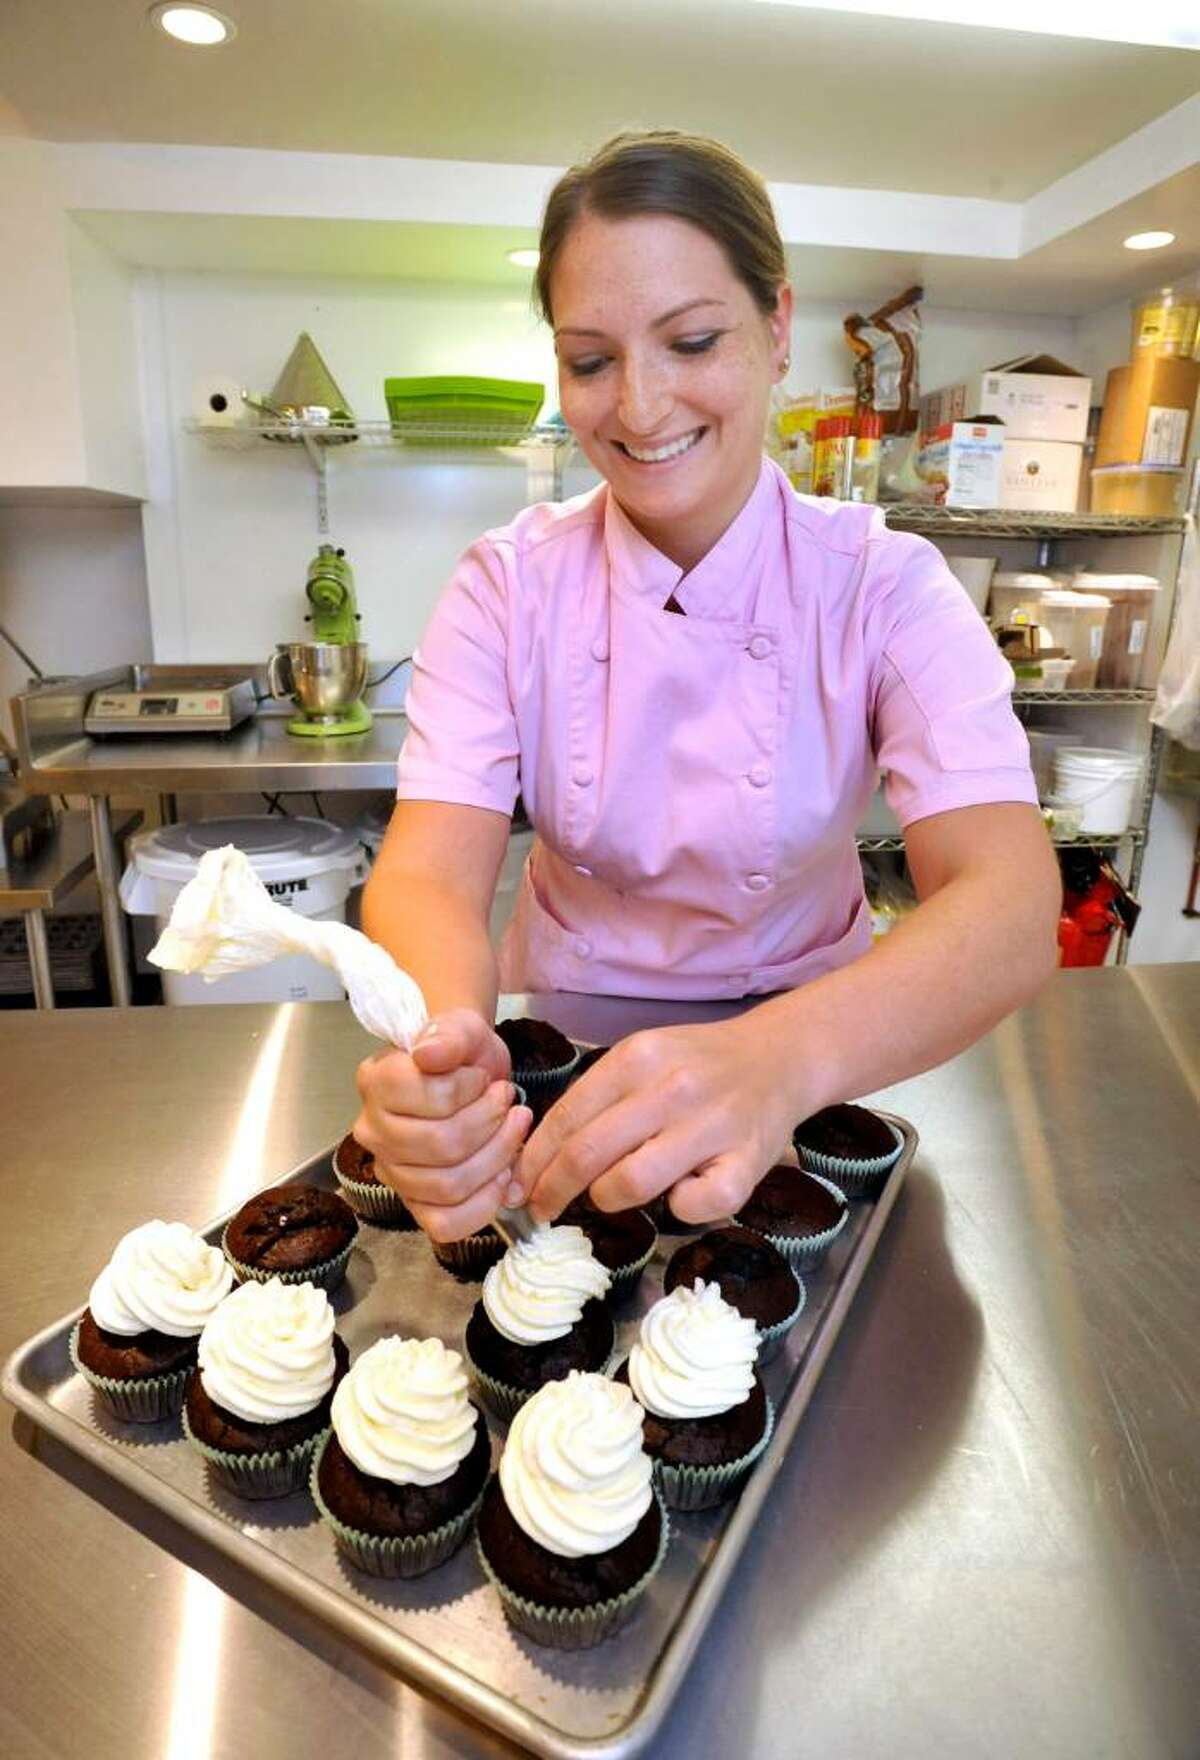 Kristen Mase, 26, frosts cupcakes at Sugar Hoot in New Milford, on Wednesday, July 21, 2010.